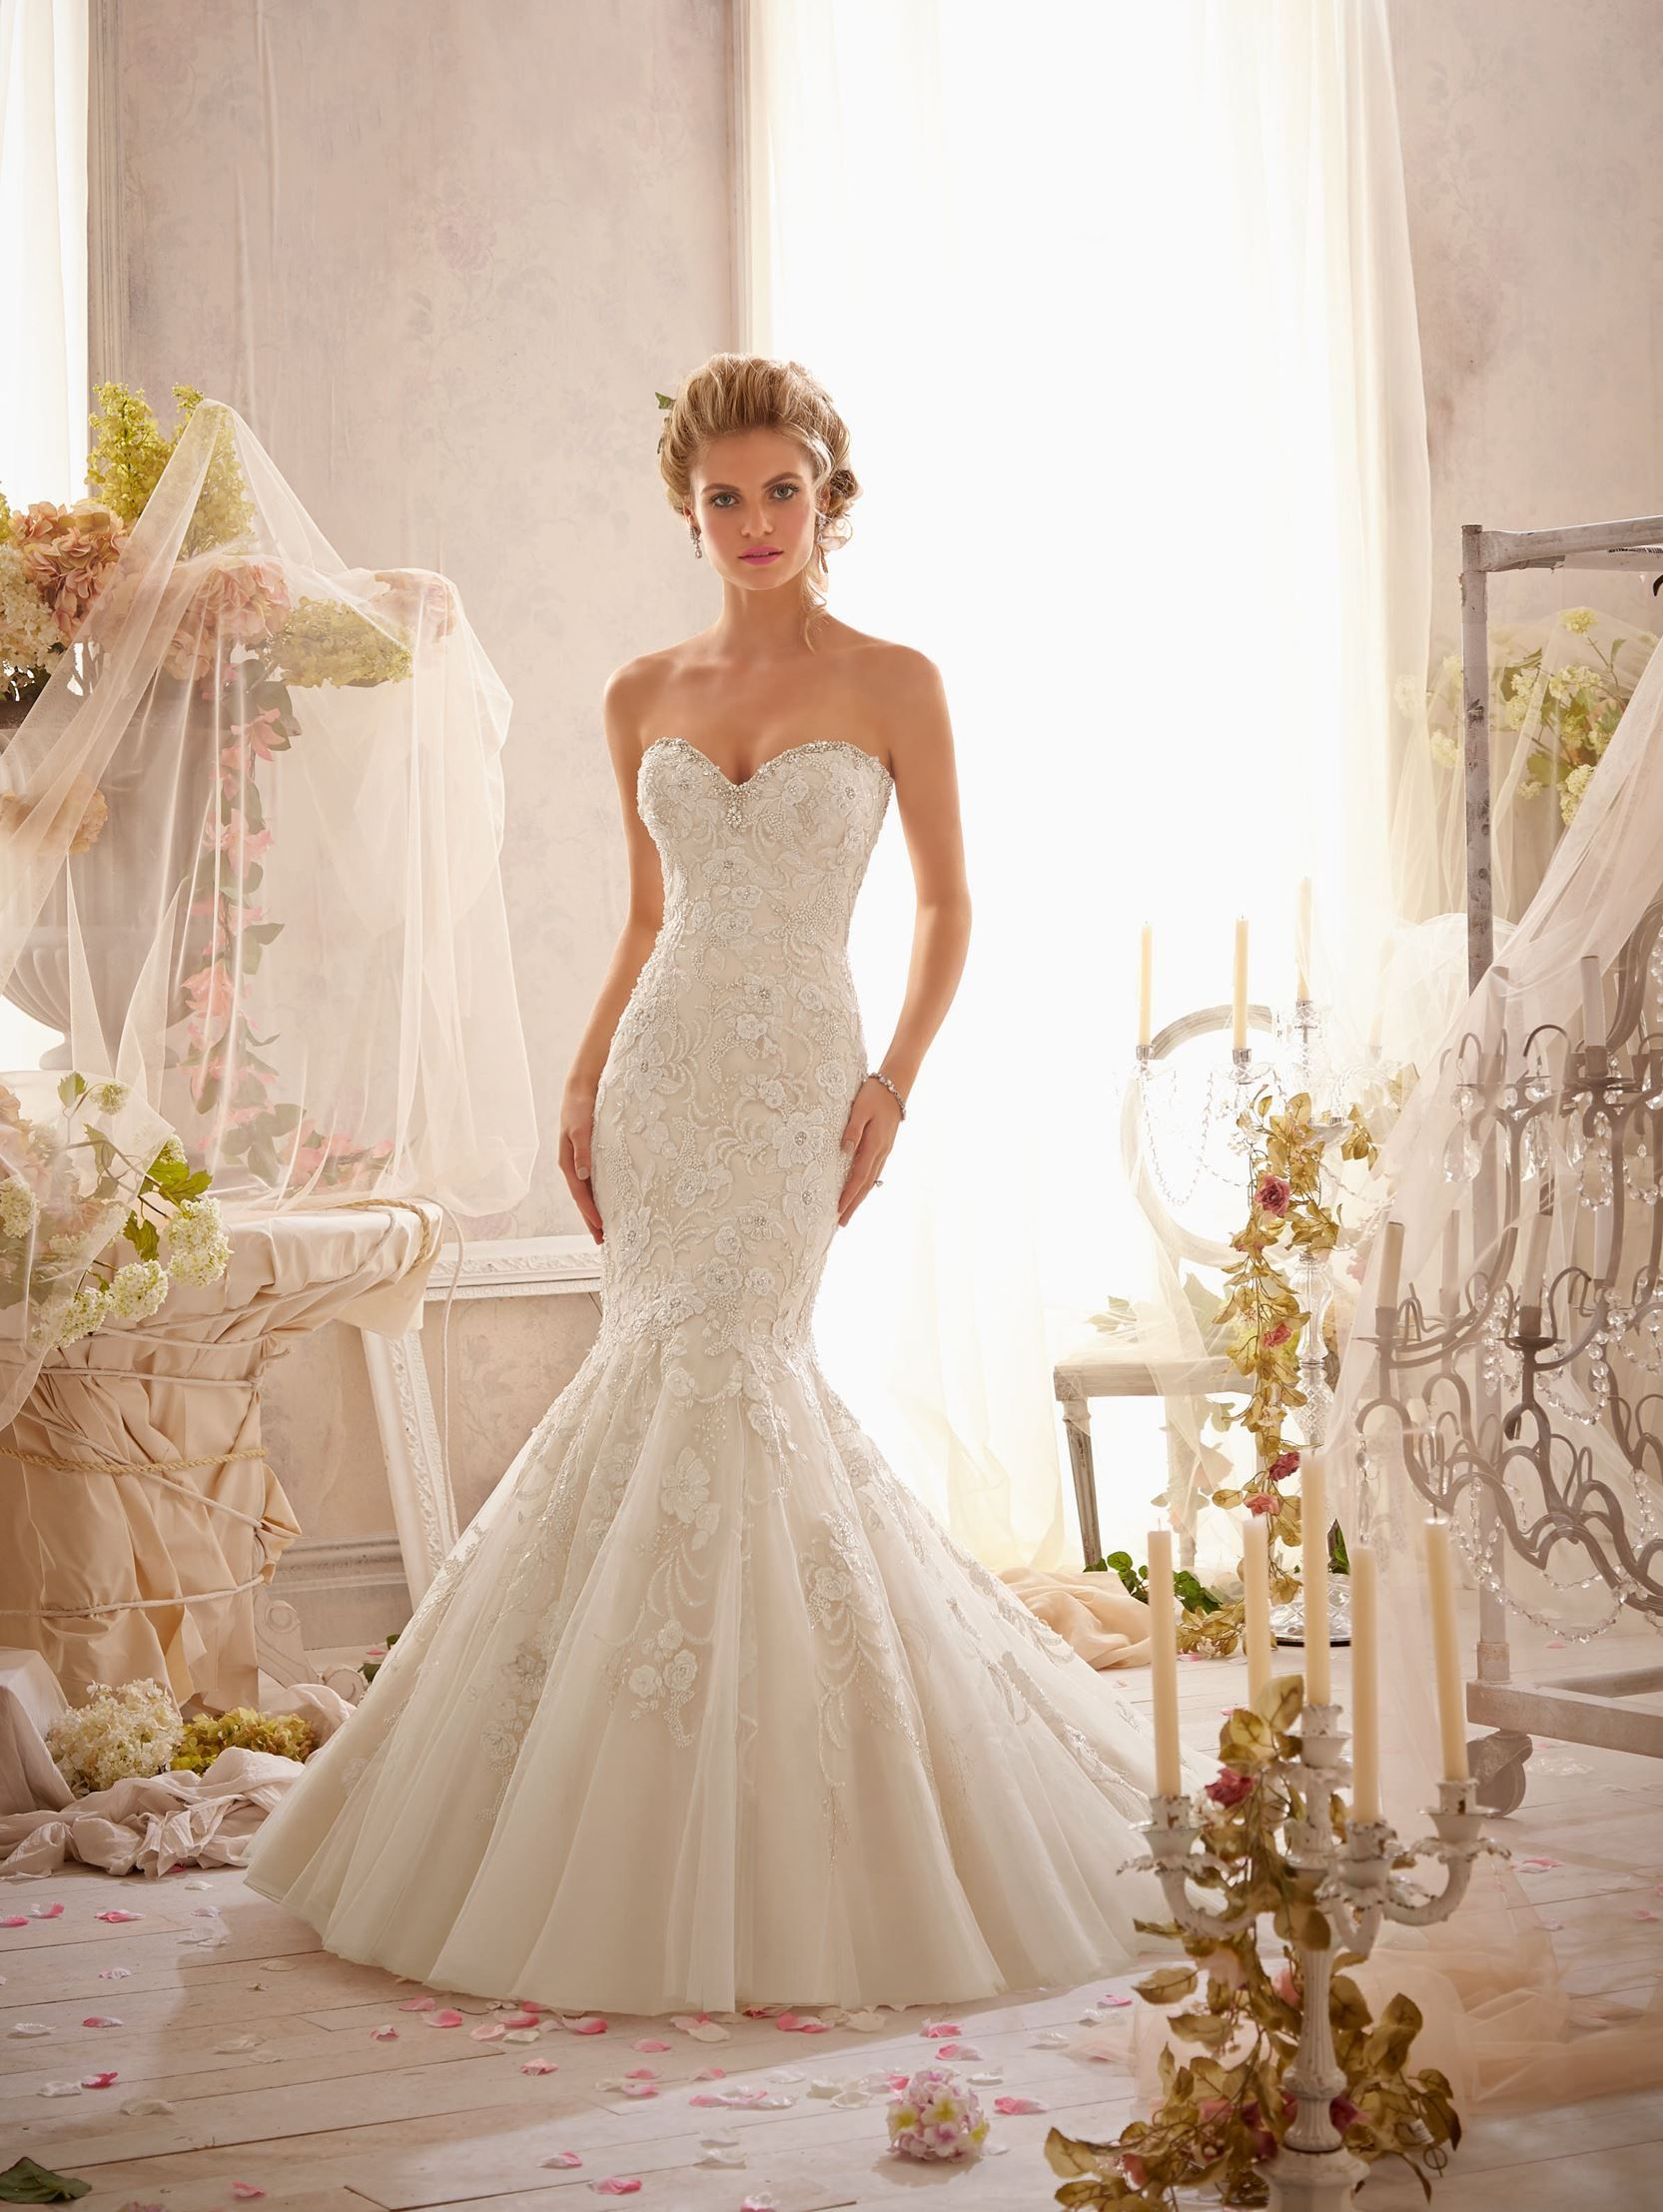 Wedding Dress Alterations Cost Perth Online Competitive